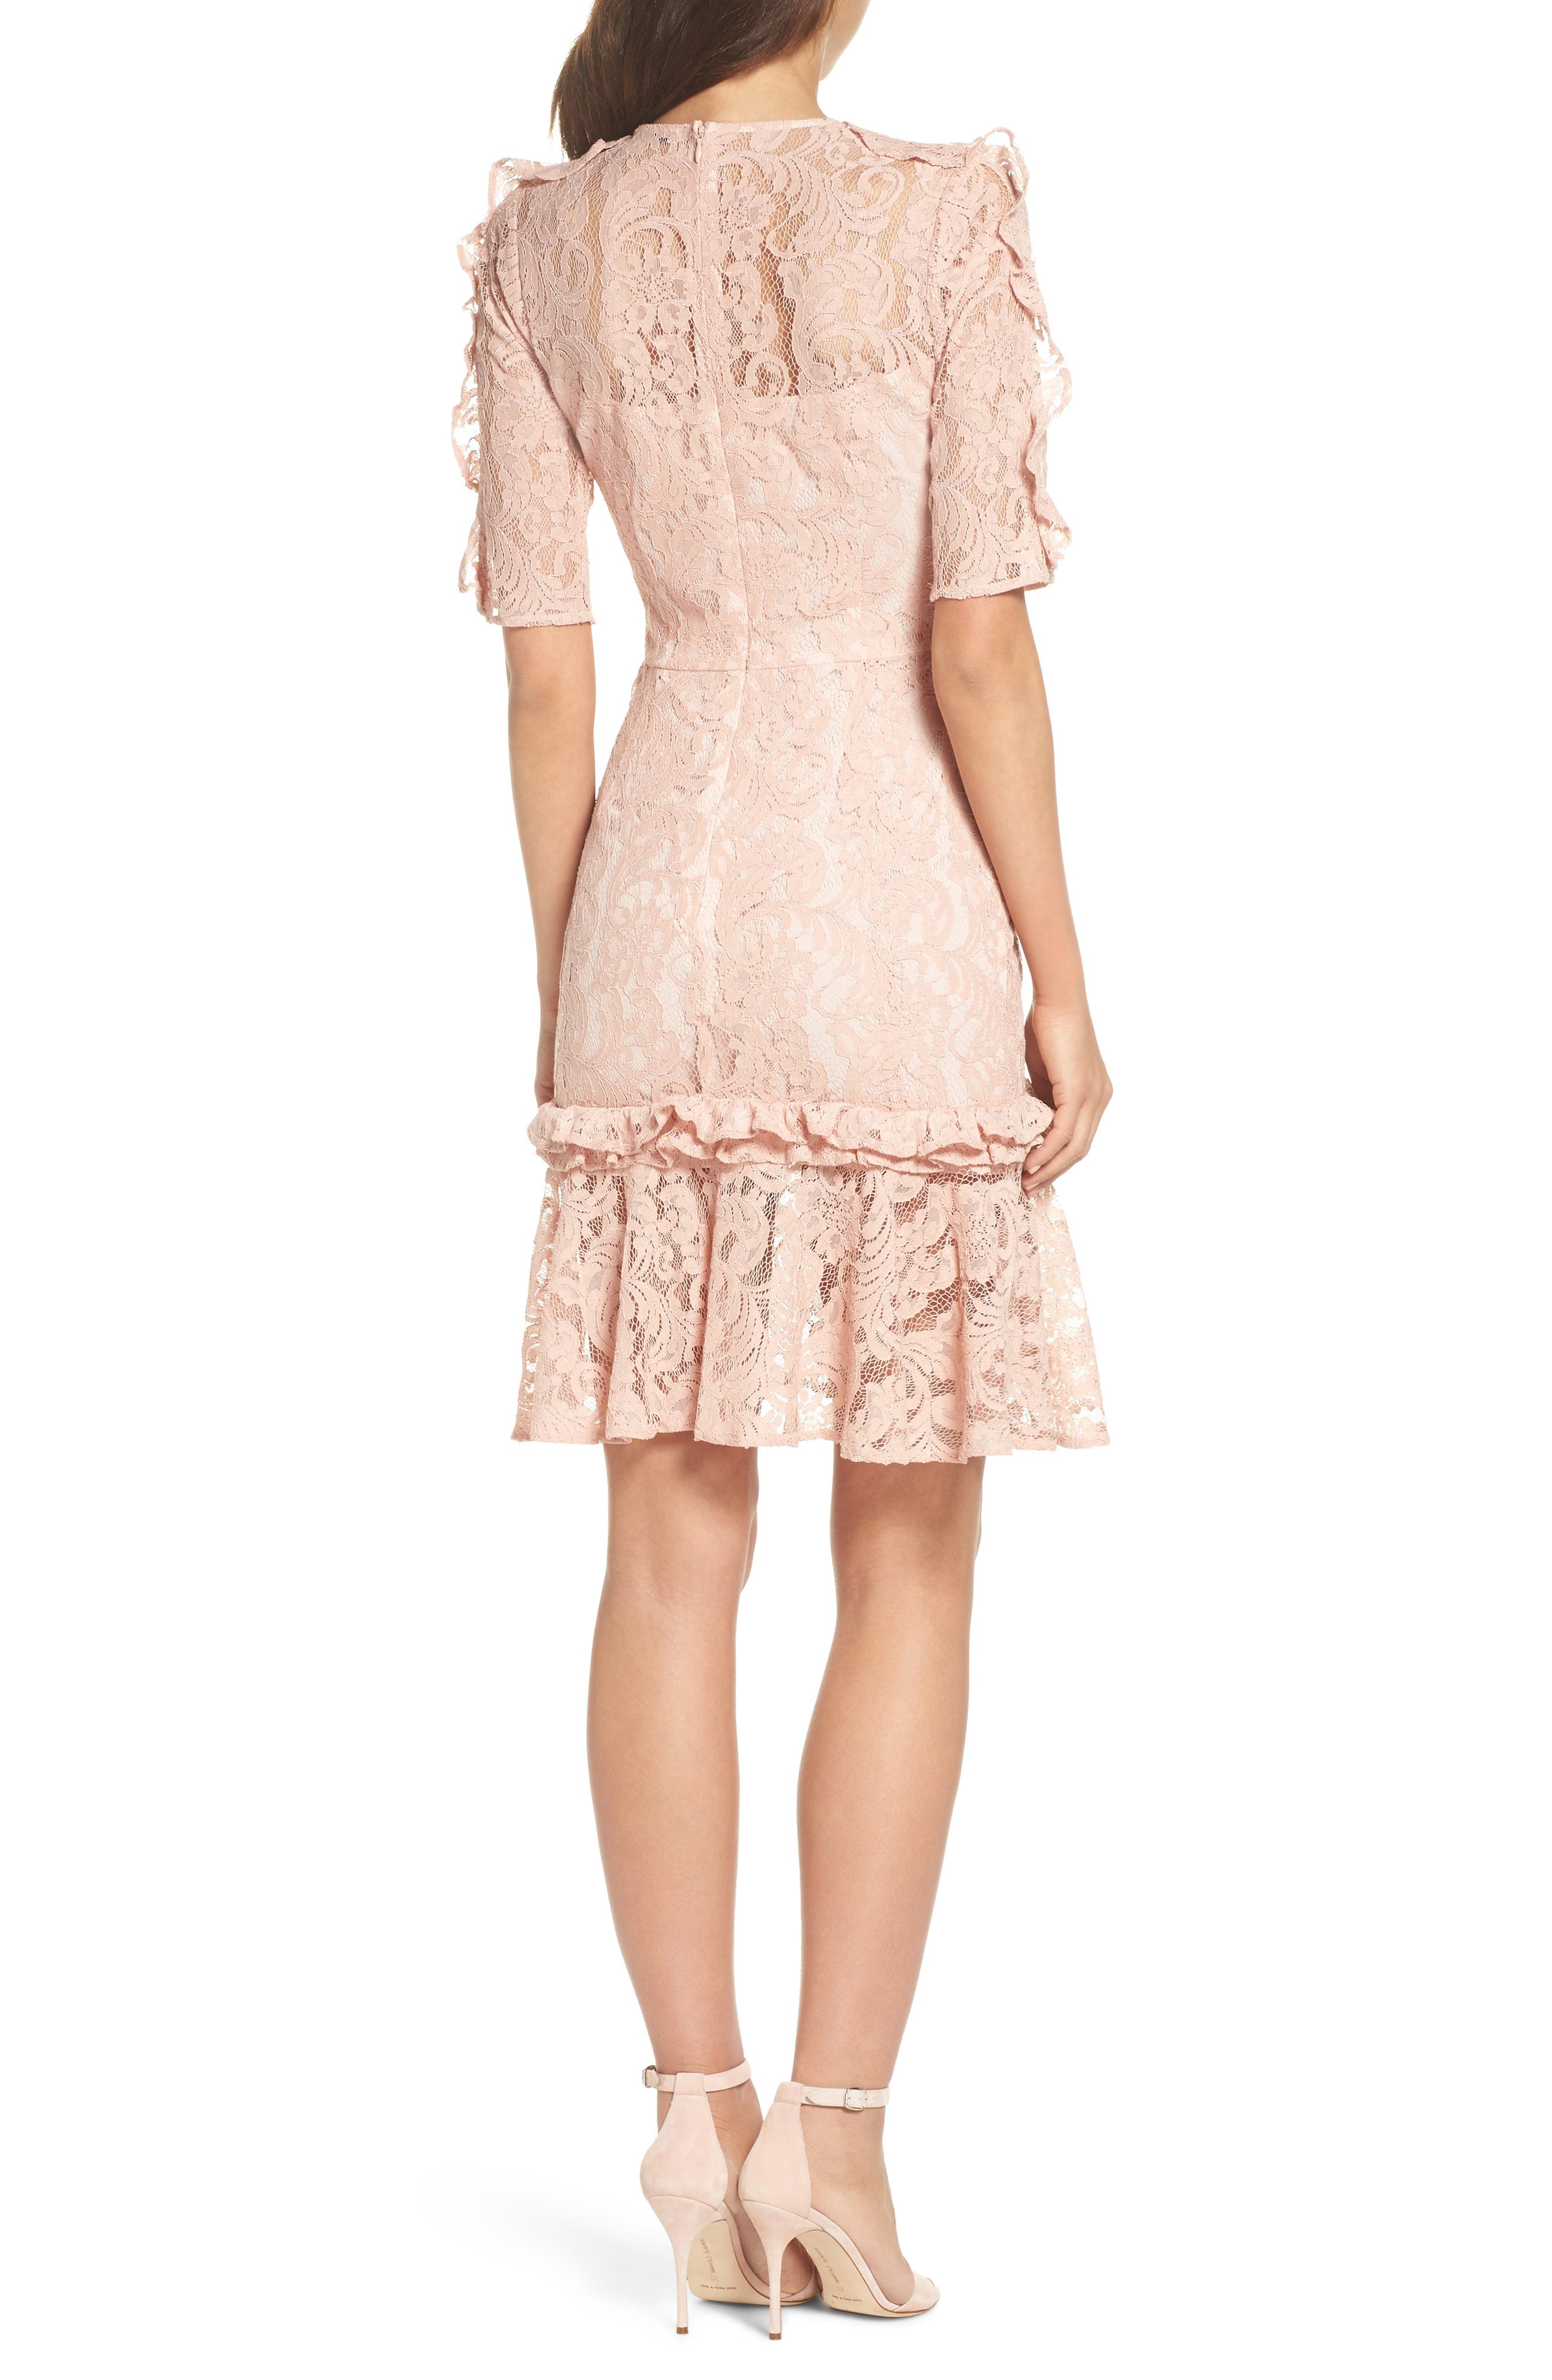 COOPER ST,                             Hushed Dove Lace Dress,                             Alternate thumbnail 2, color,                             650